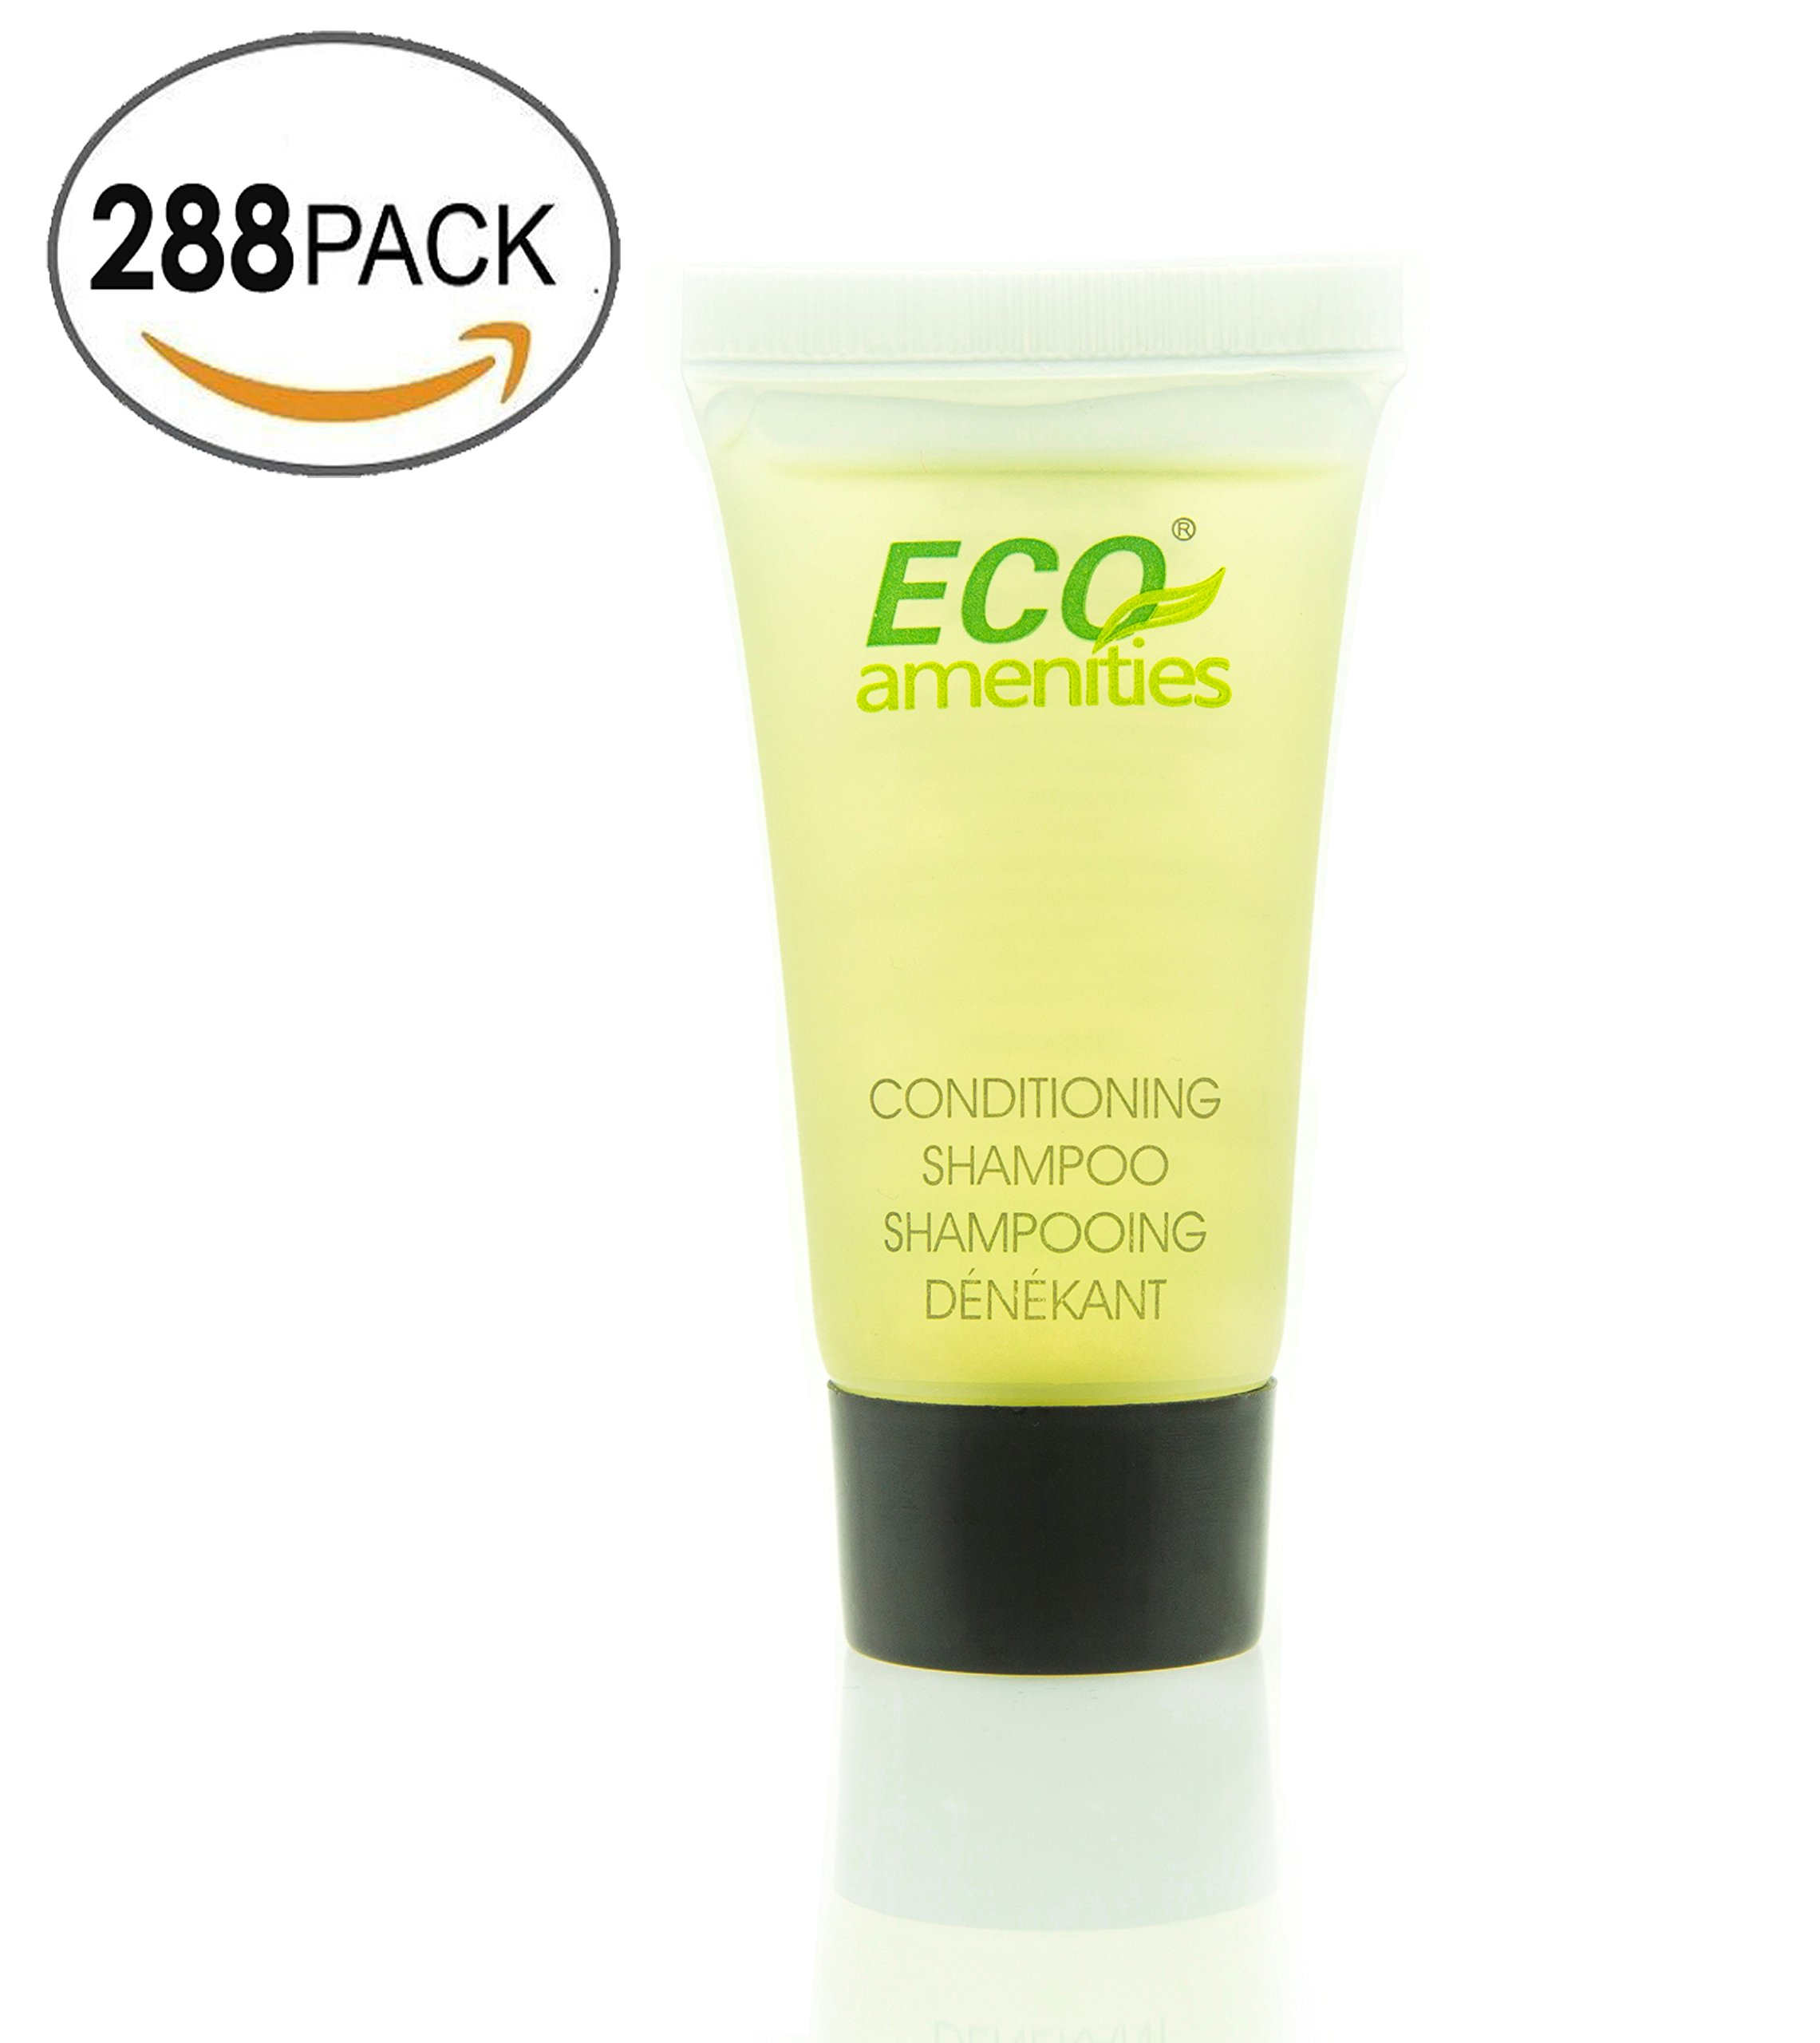 ECO AMENITIES Travel Size 0.75oz Hotel Shampoo and Conditioner Bulk, Clear, Green Tea, 288 Count by ECO Amenities